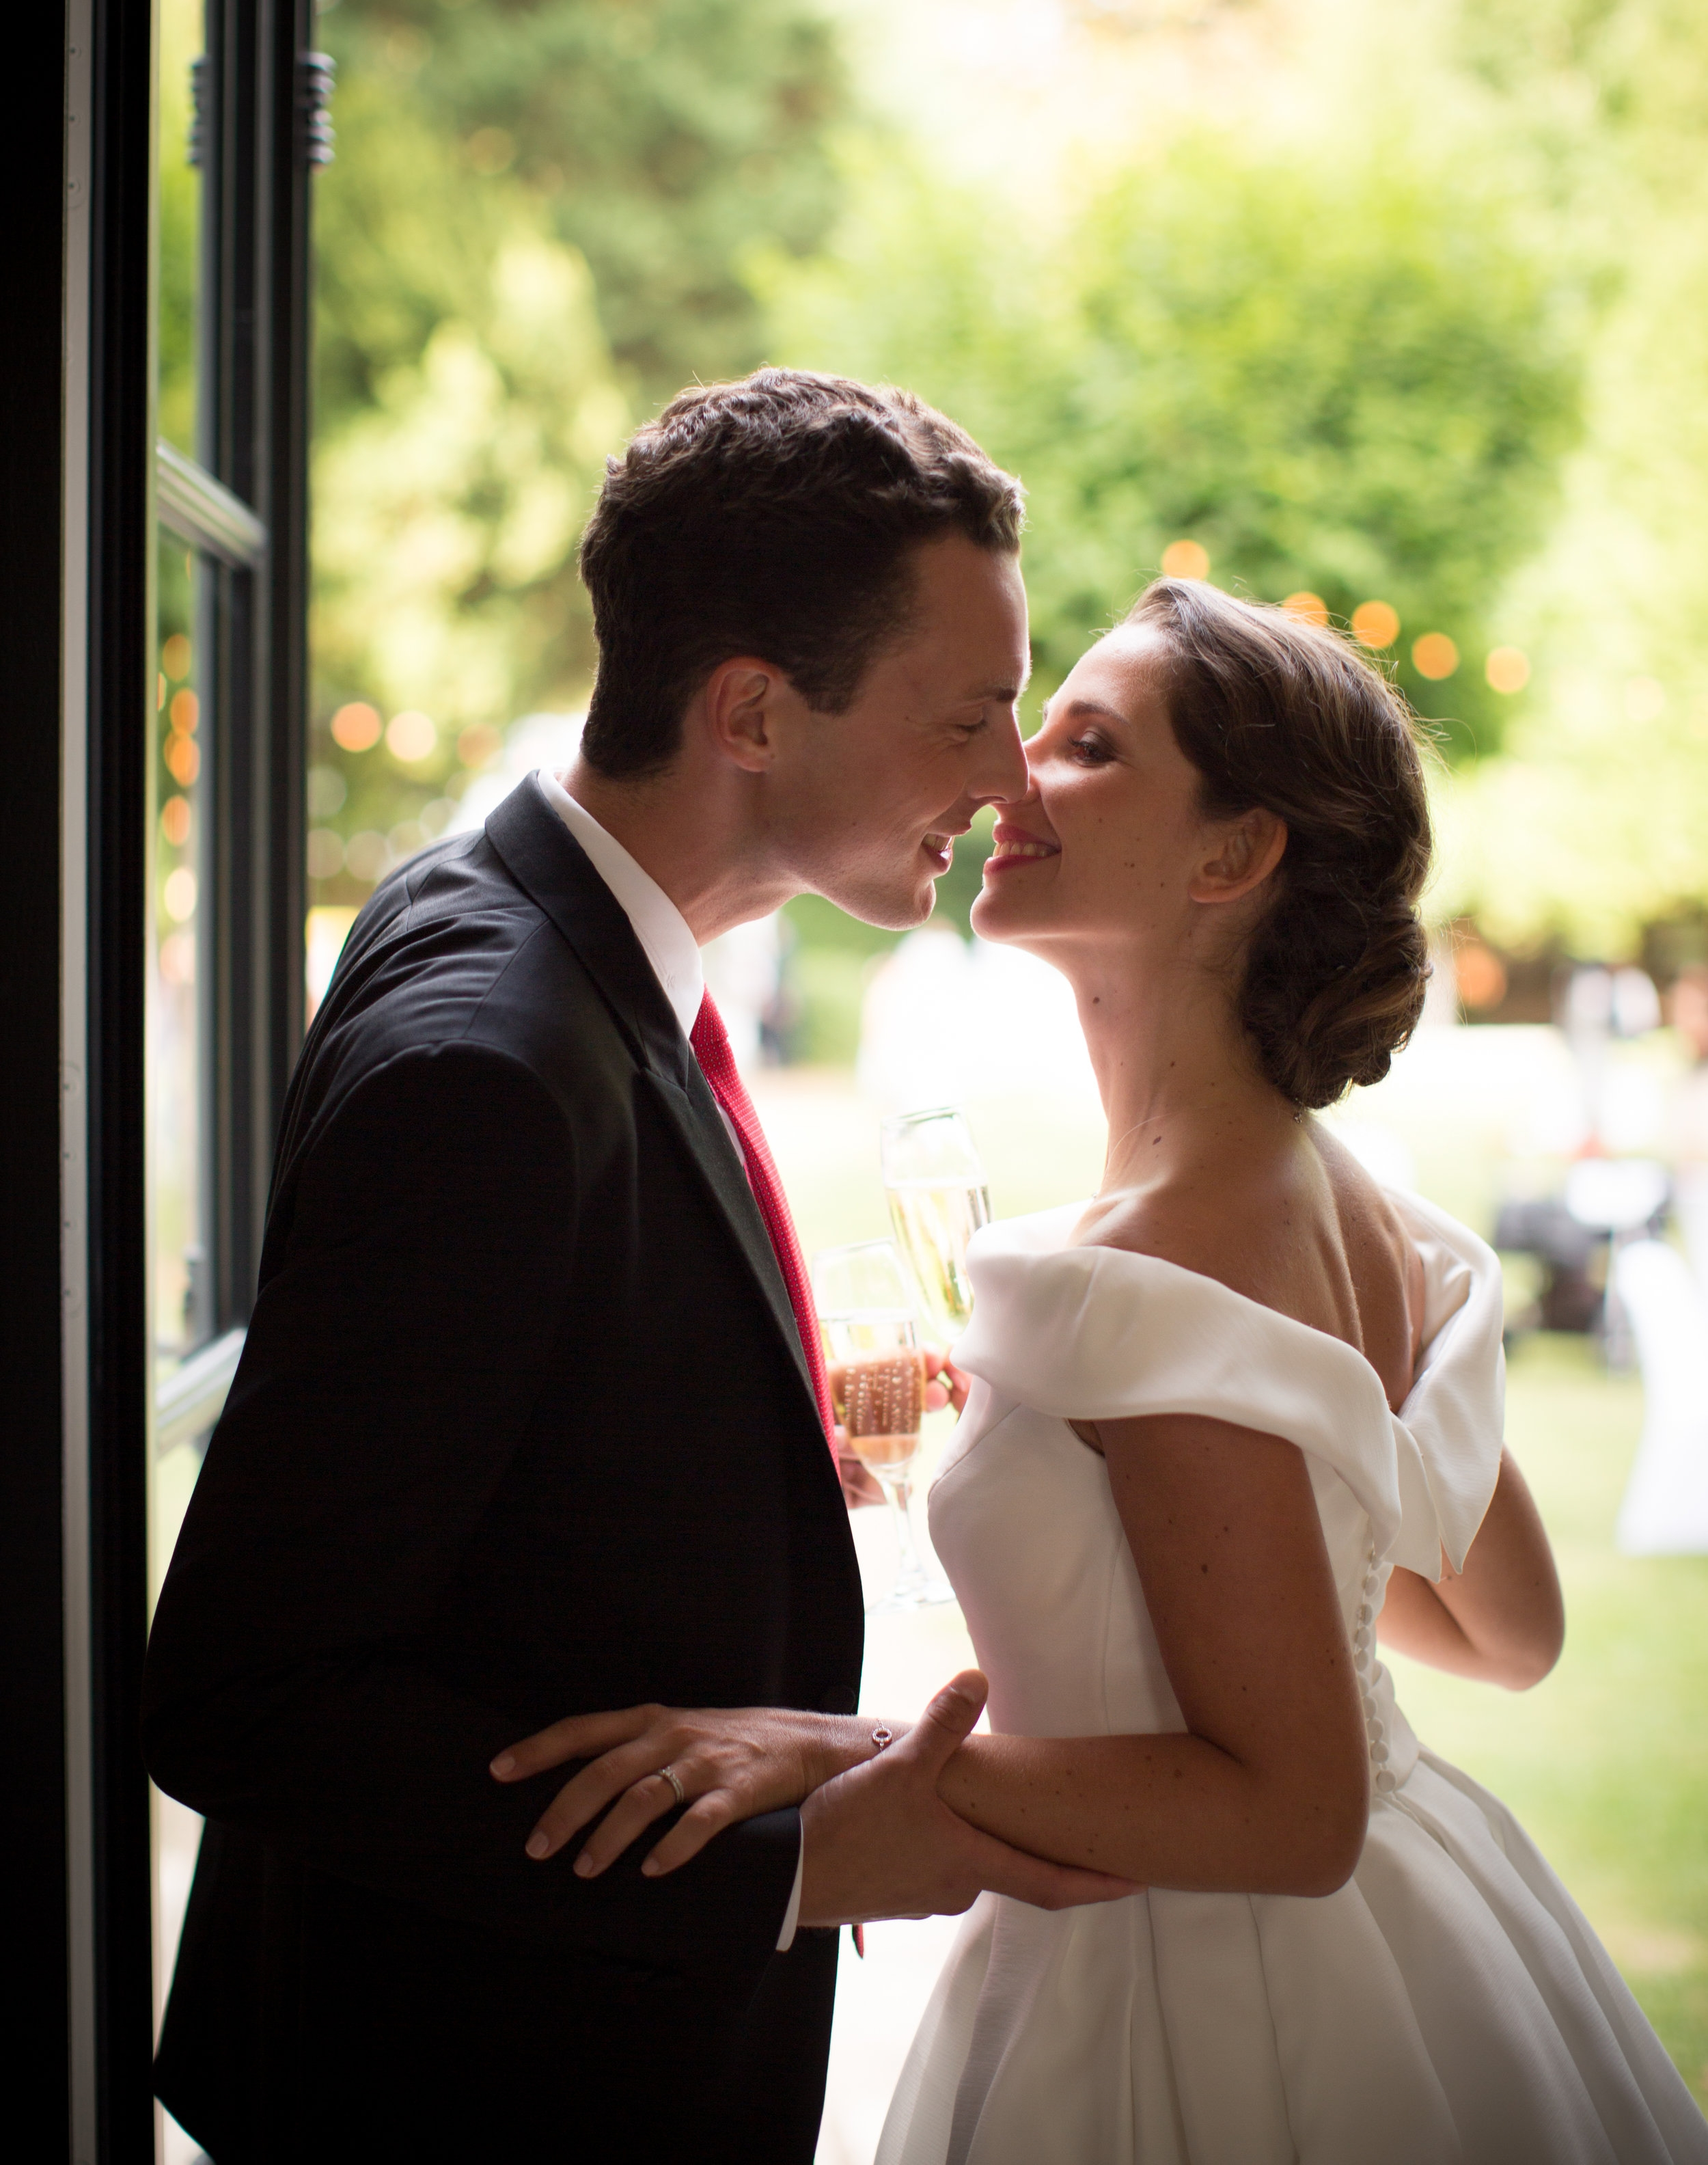 Mariage de Manon, coiffure et maquillage by The reporthair